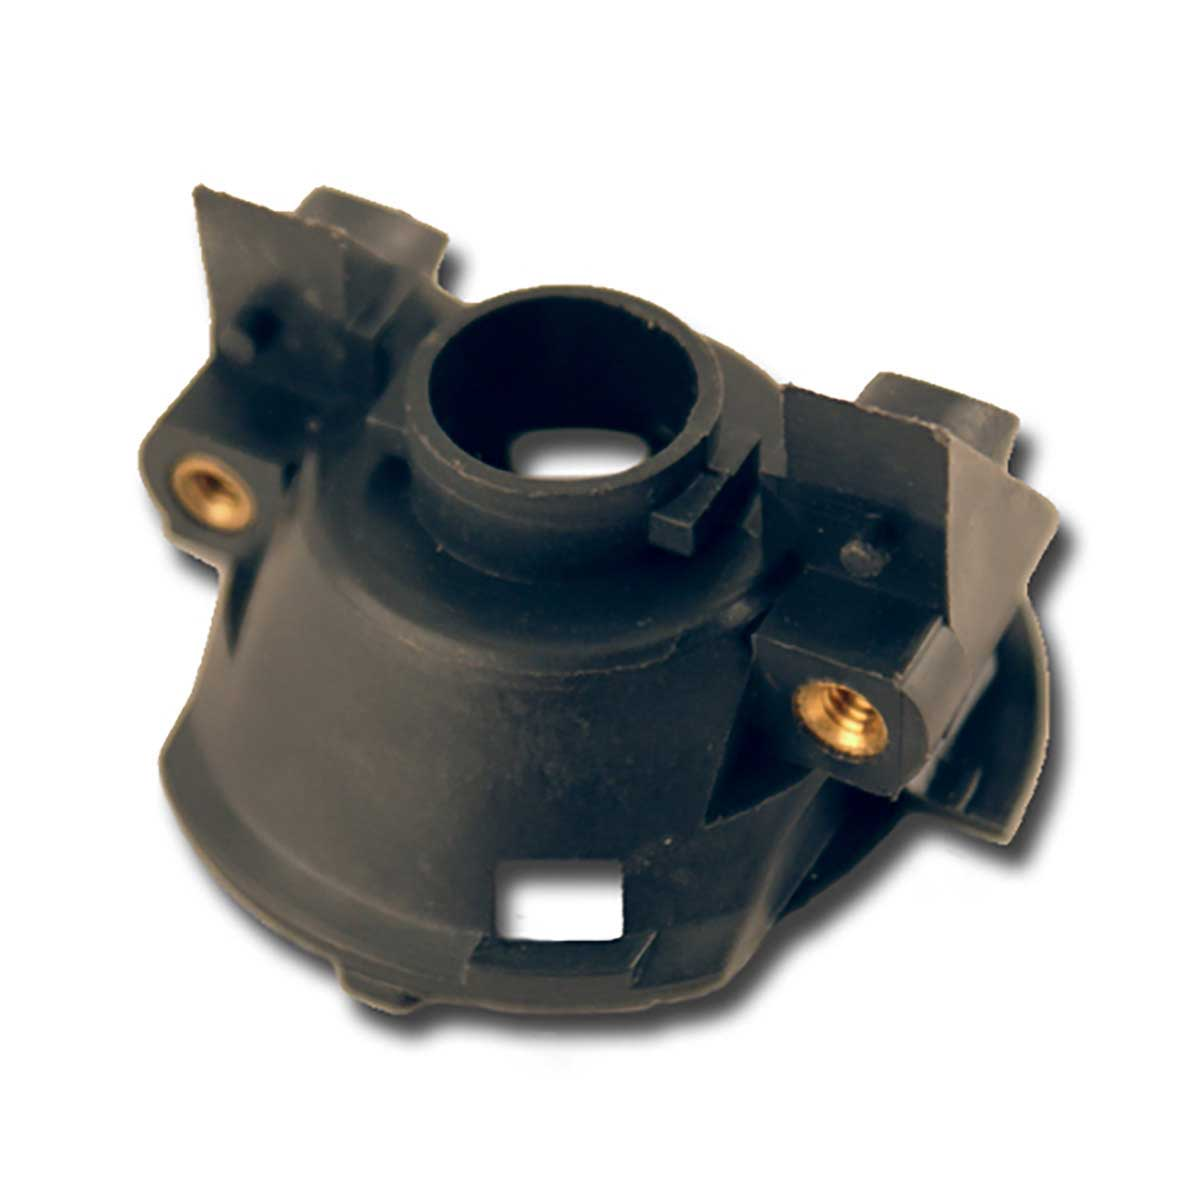 Front Motor Frame For All AGC/AGRC/AGP/AGCl Andis Clipper Models at Ryan's Pet Supplies